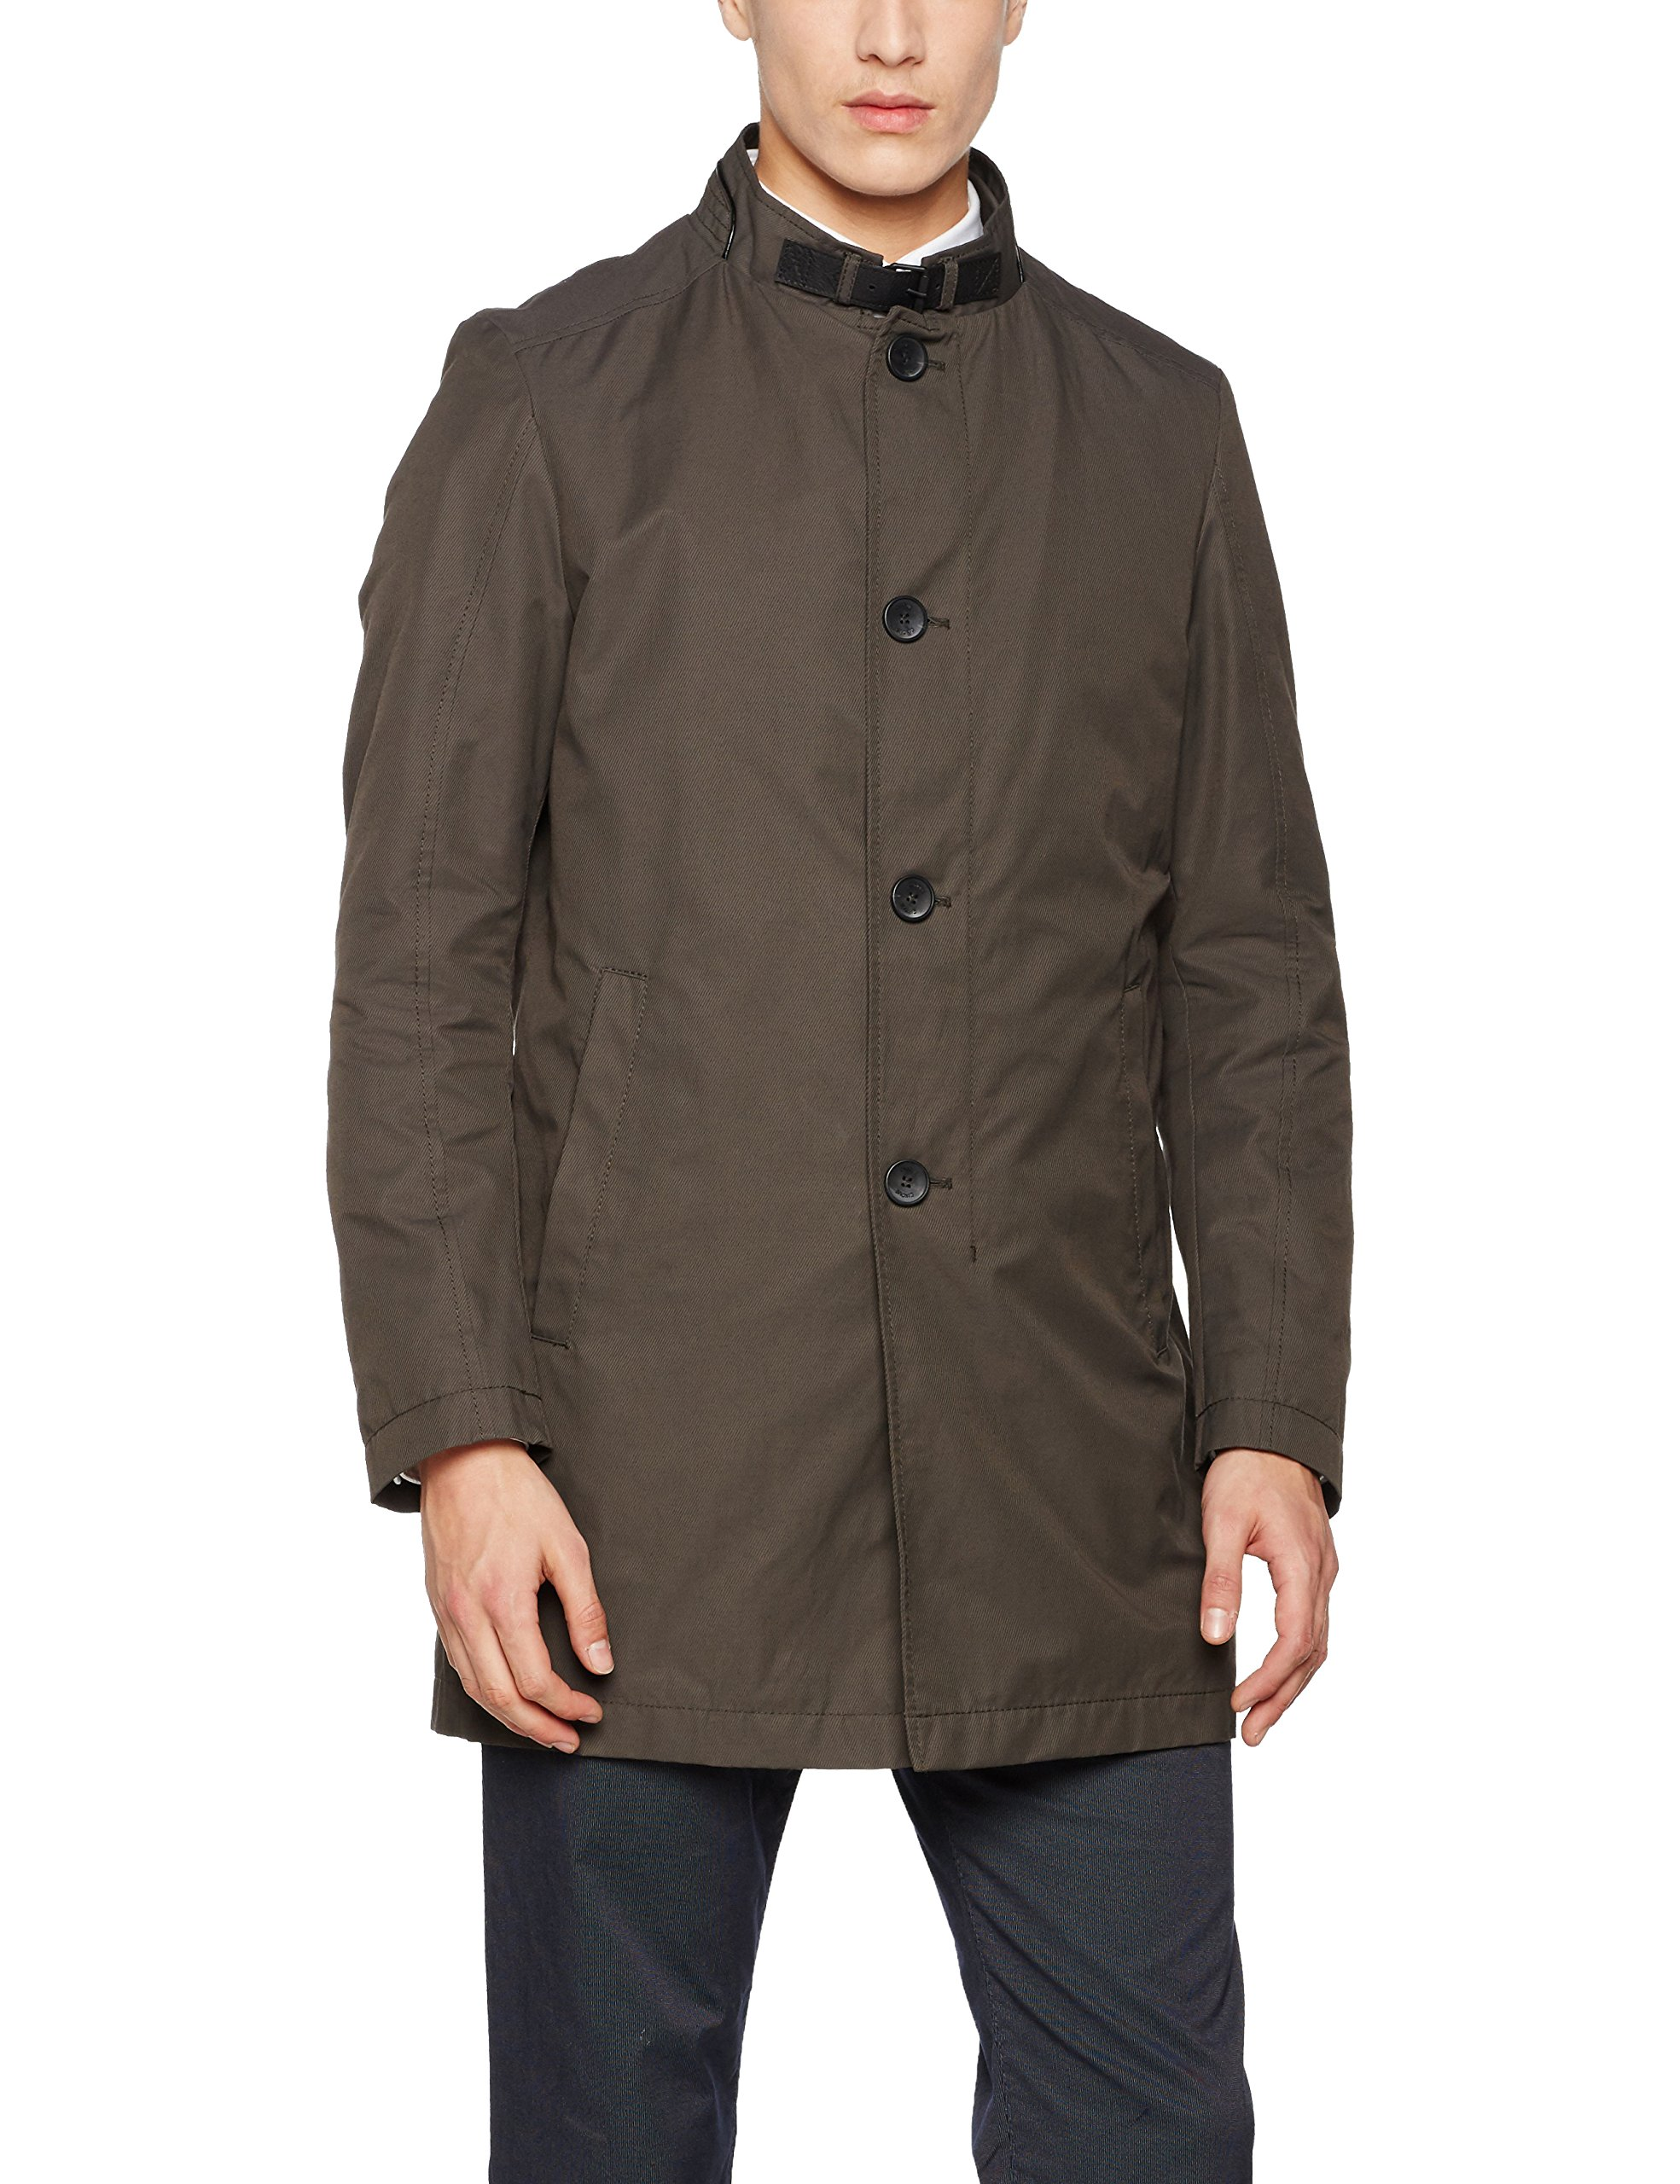 smalltaille Fabricant46Homme Cinque Du ManteauGrisanthra 98X Ciliverpool m8ON0nvw